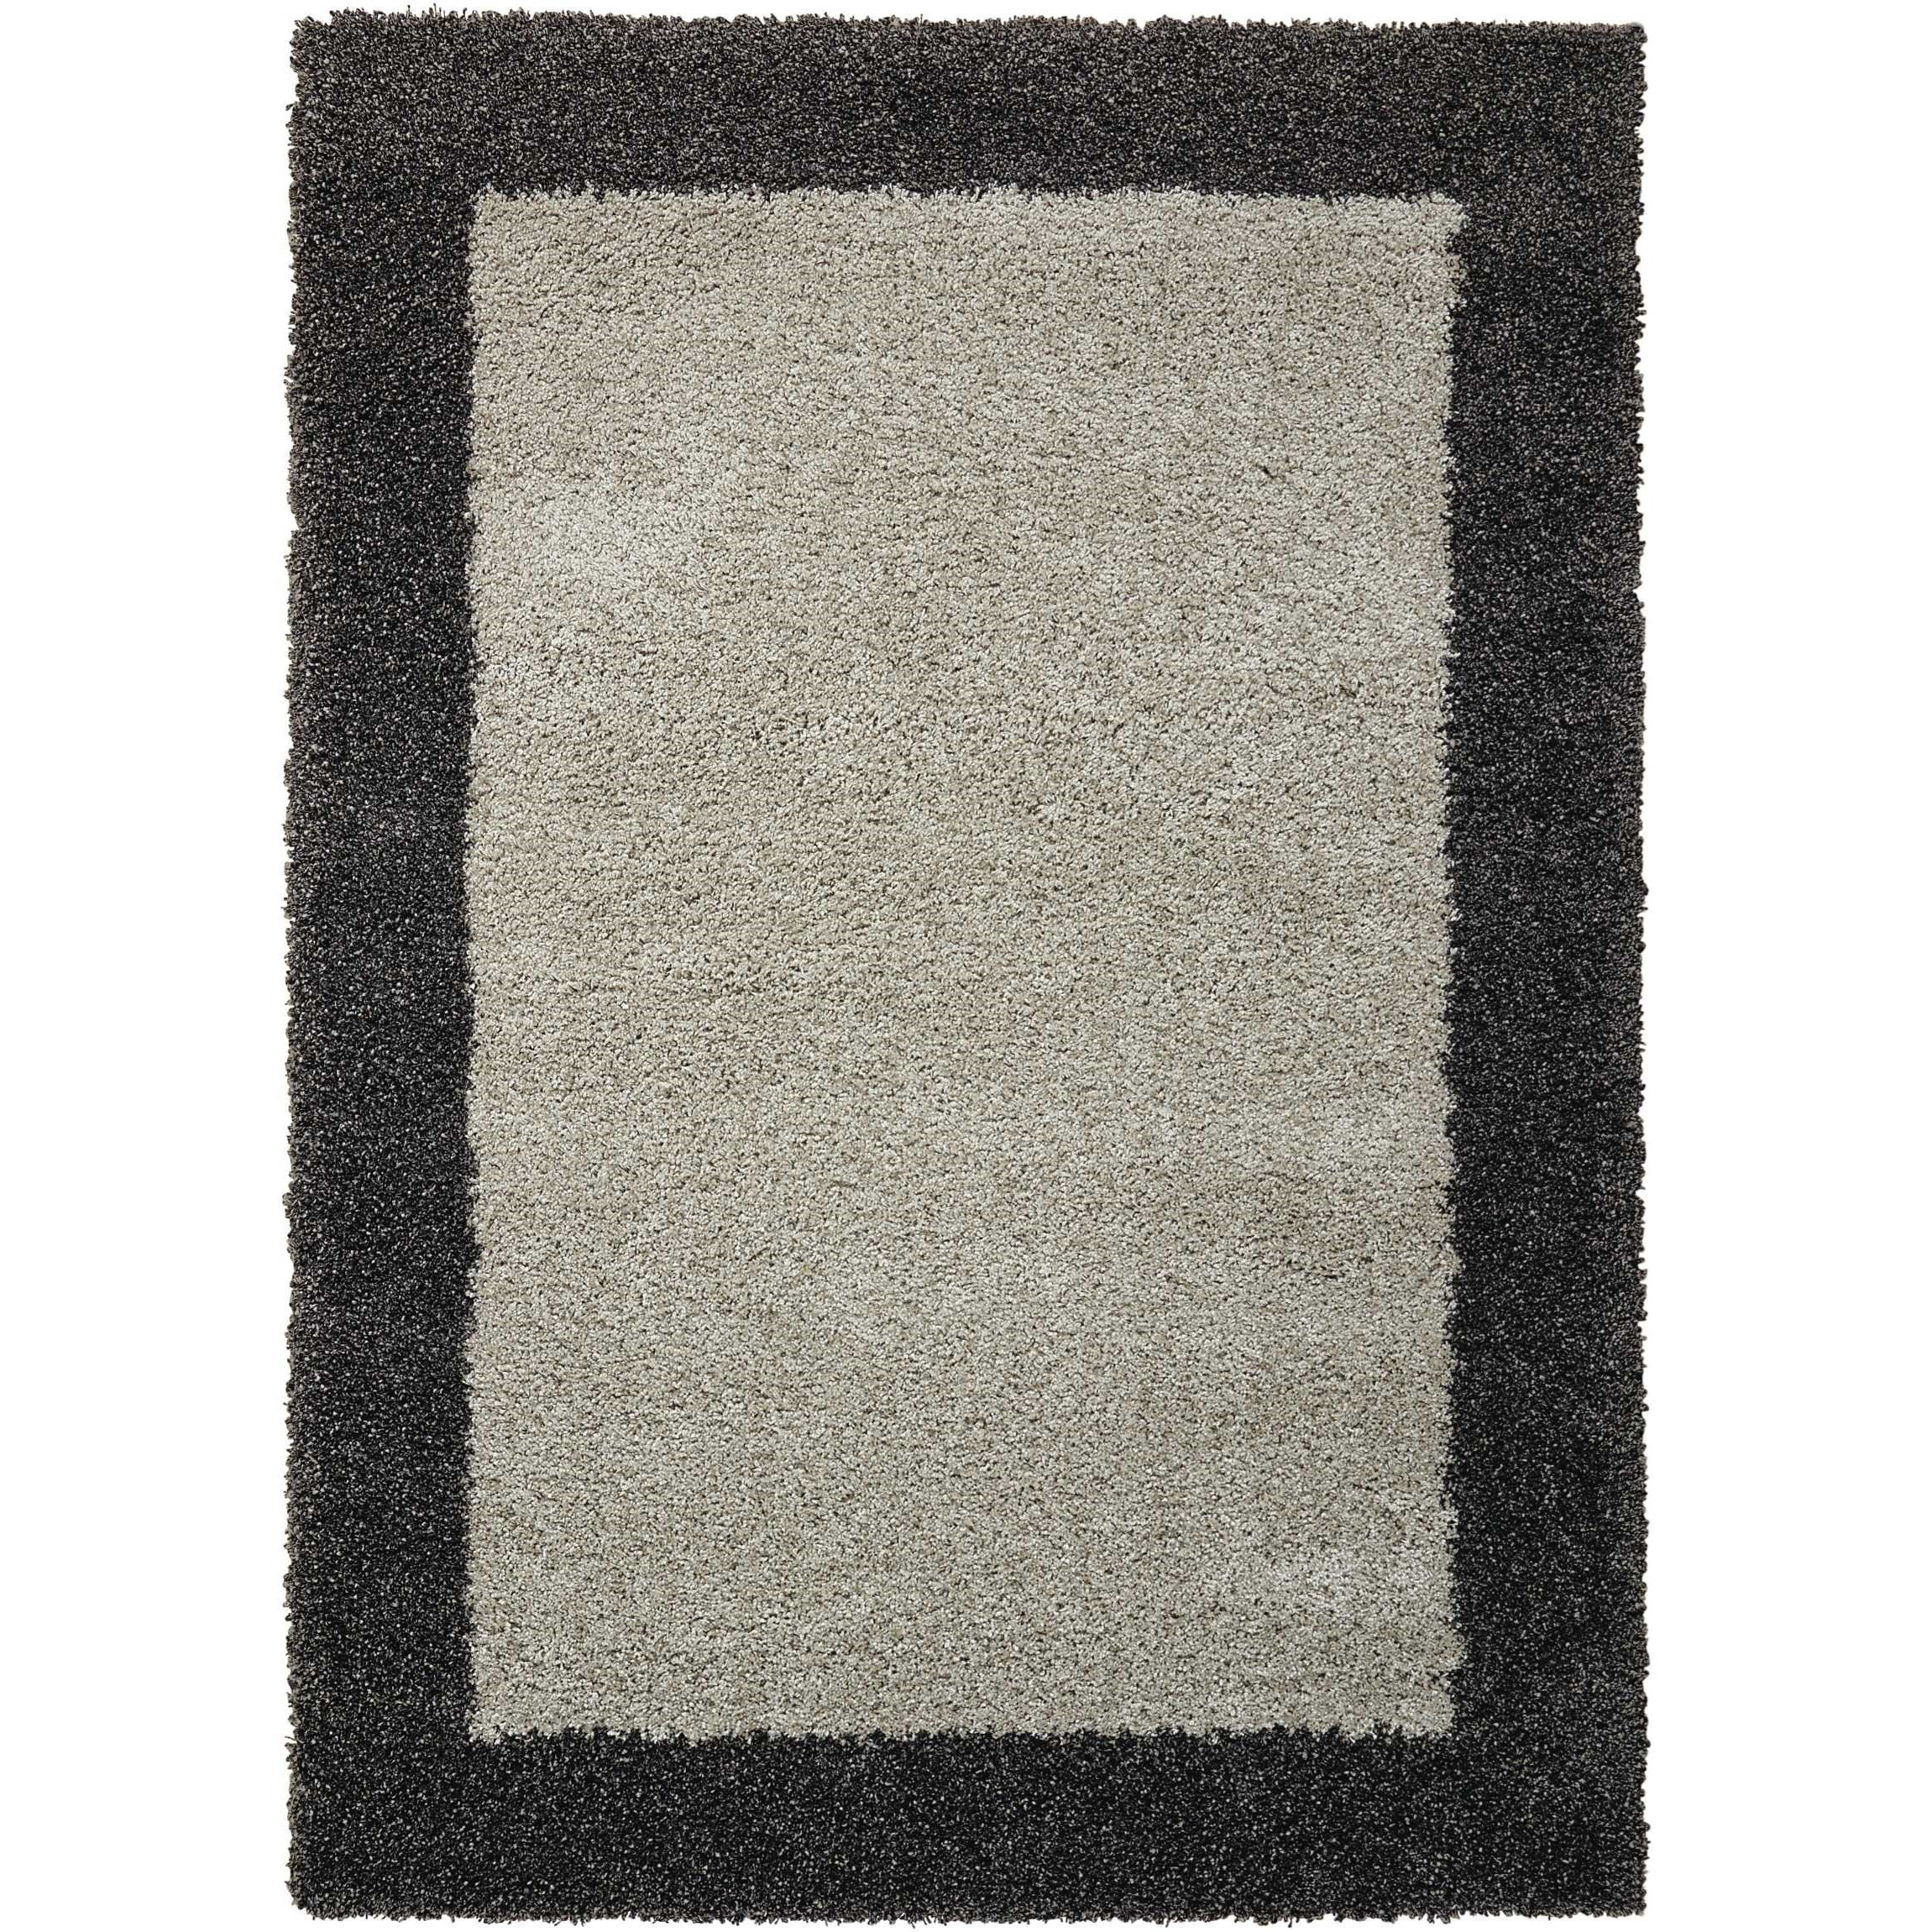 """Amore 3'11"""" x 5'11"""" Silver/Charcoal Rectangle Rug by Nourison at Sprintz Furniture"""